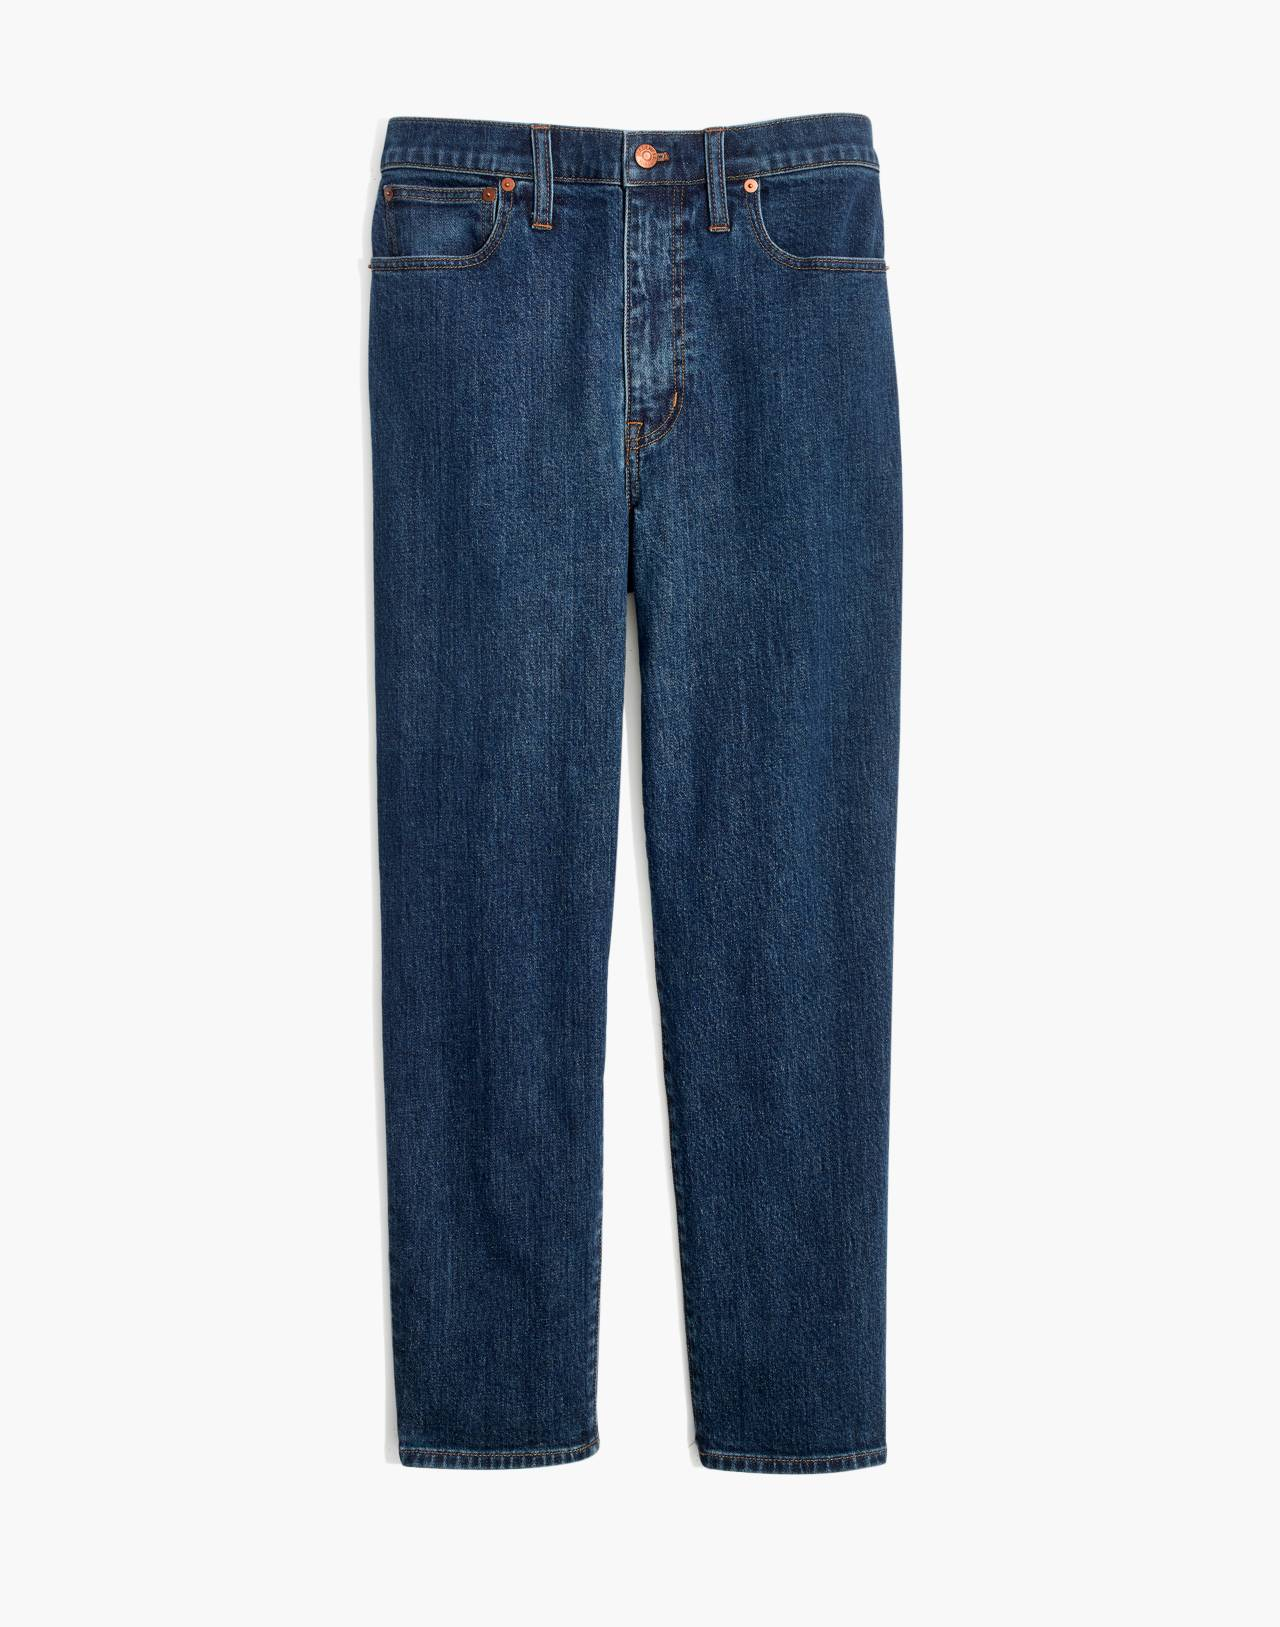 Tapered Jeans in Bellclaire Wash in belclaire wash image 4